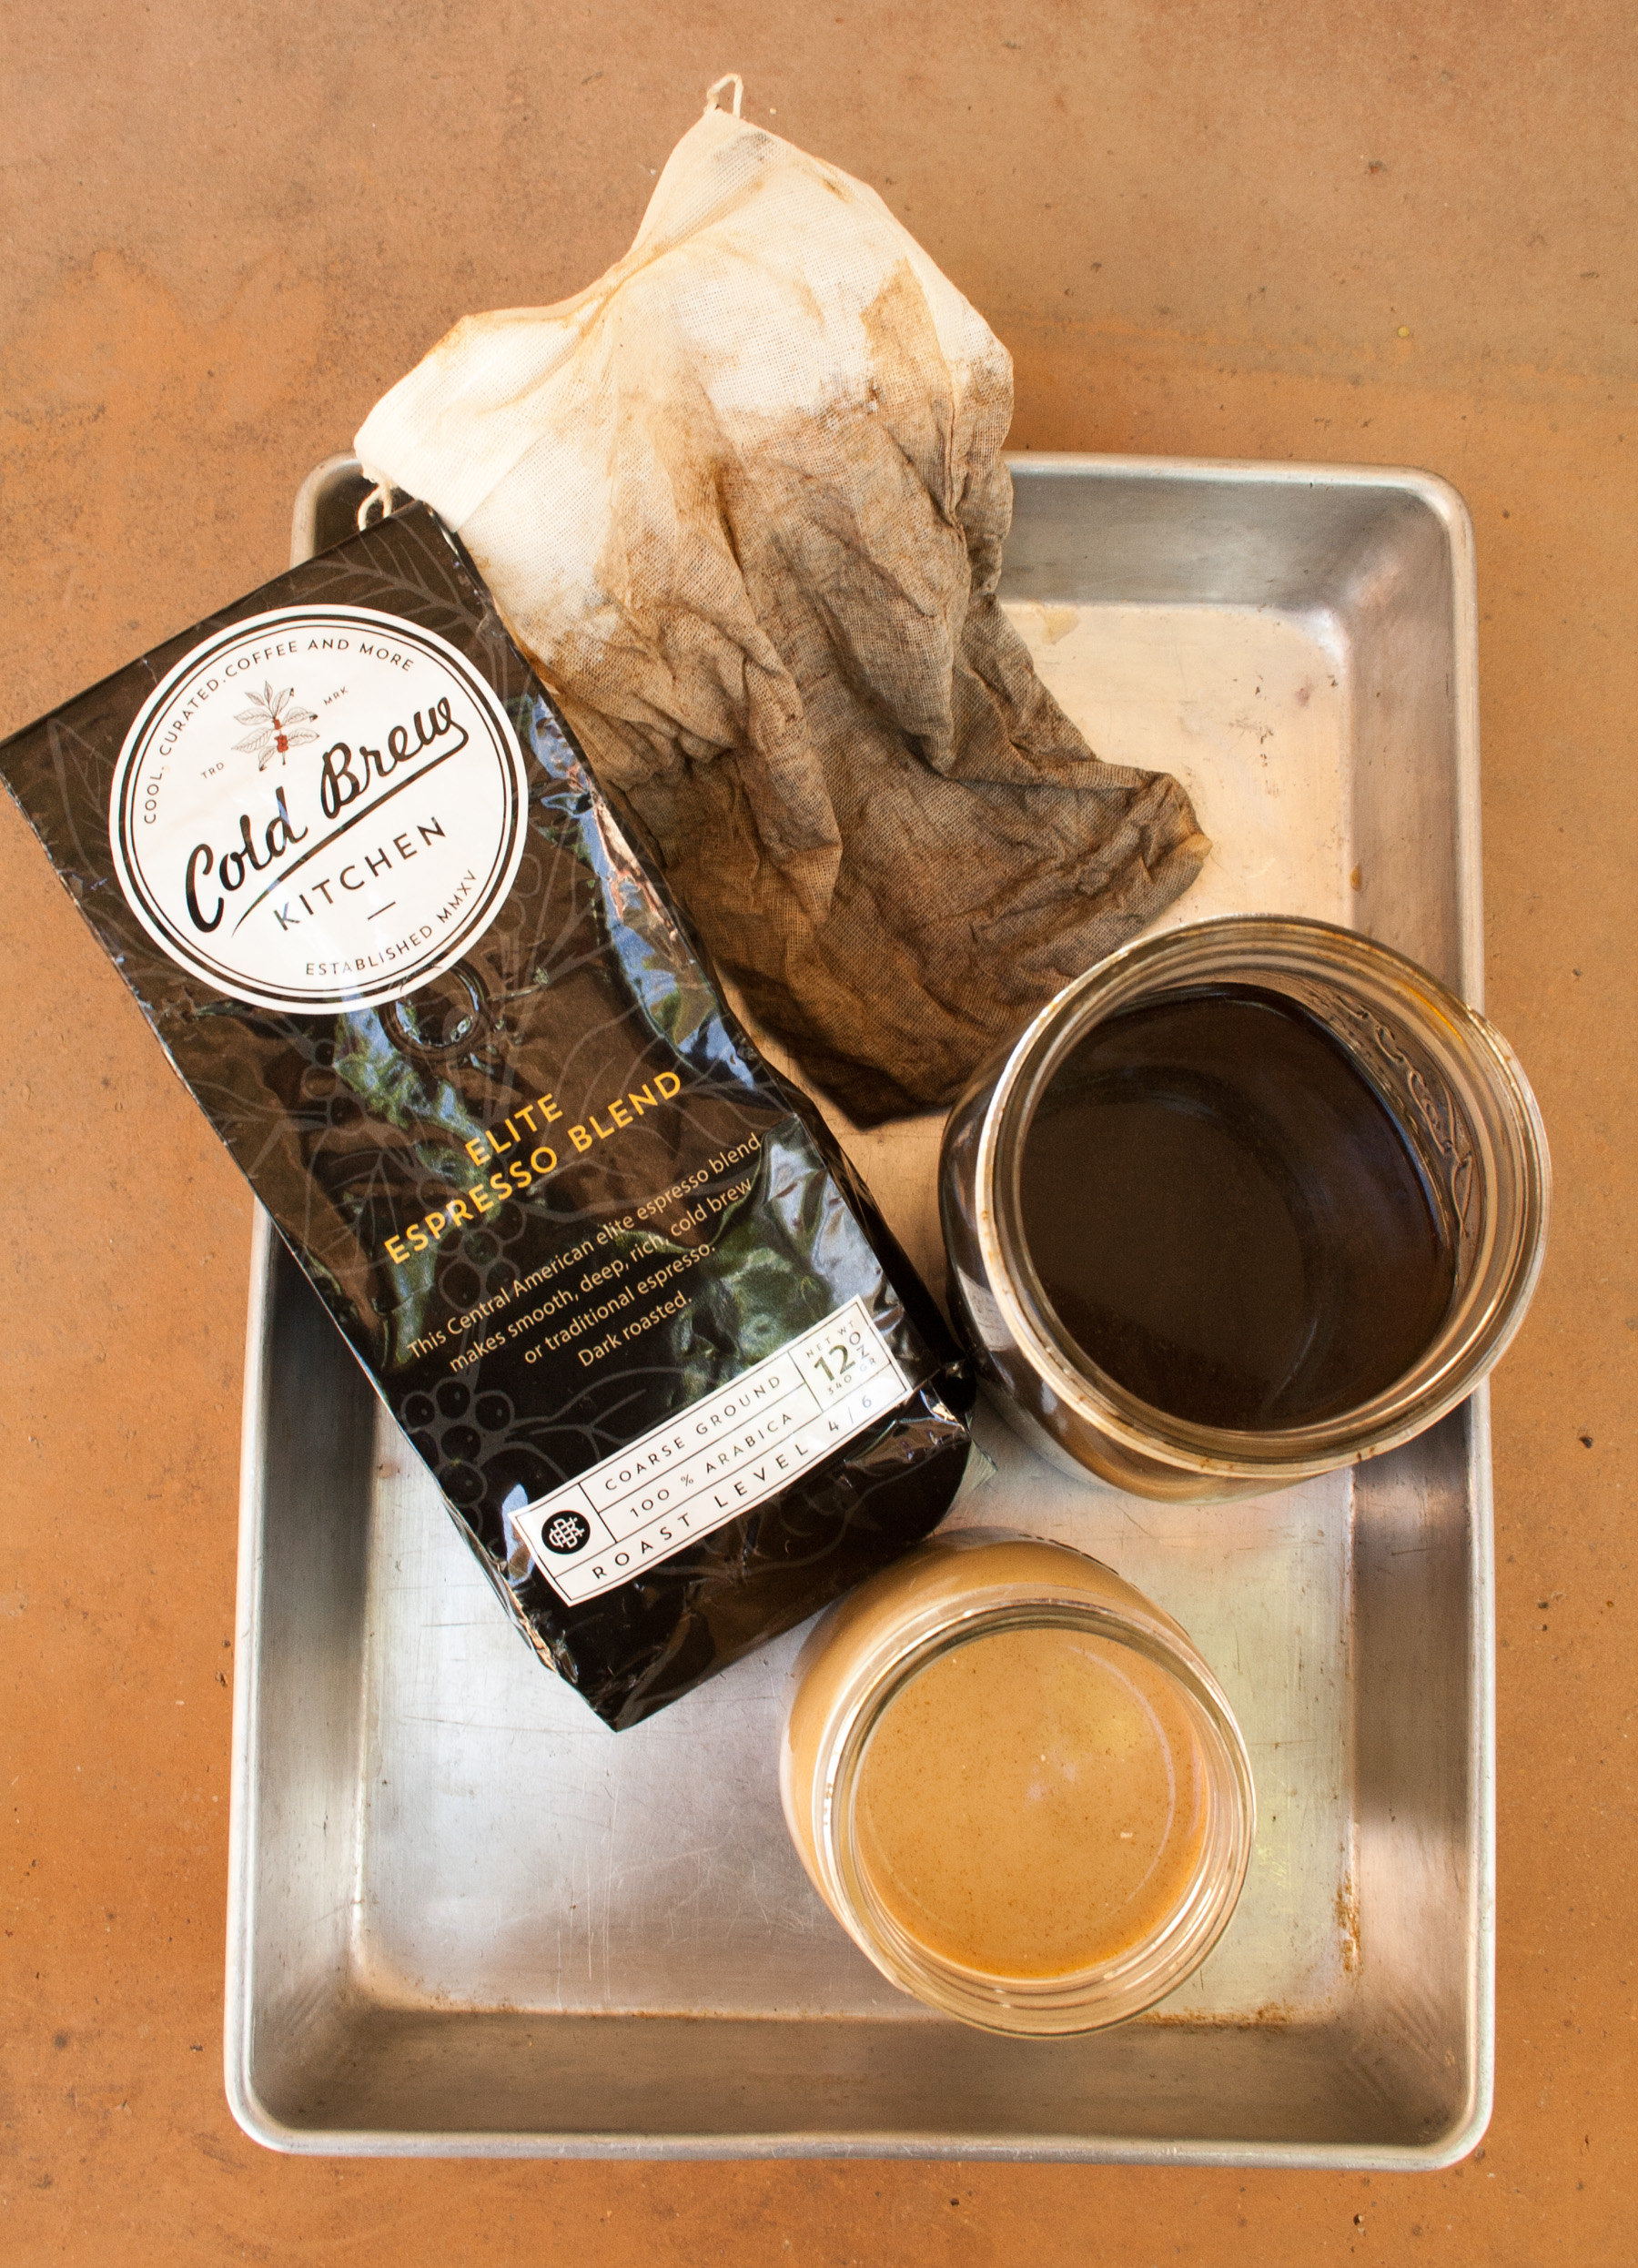 Cold Brewed Coffee Recipe and Review - ingredients and coffee that;s been cold brewed